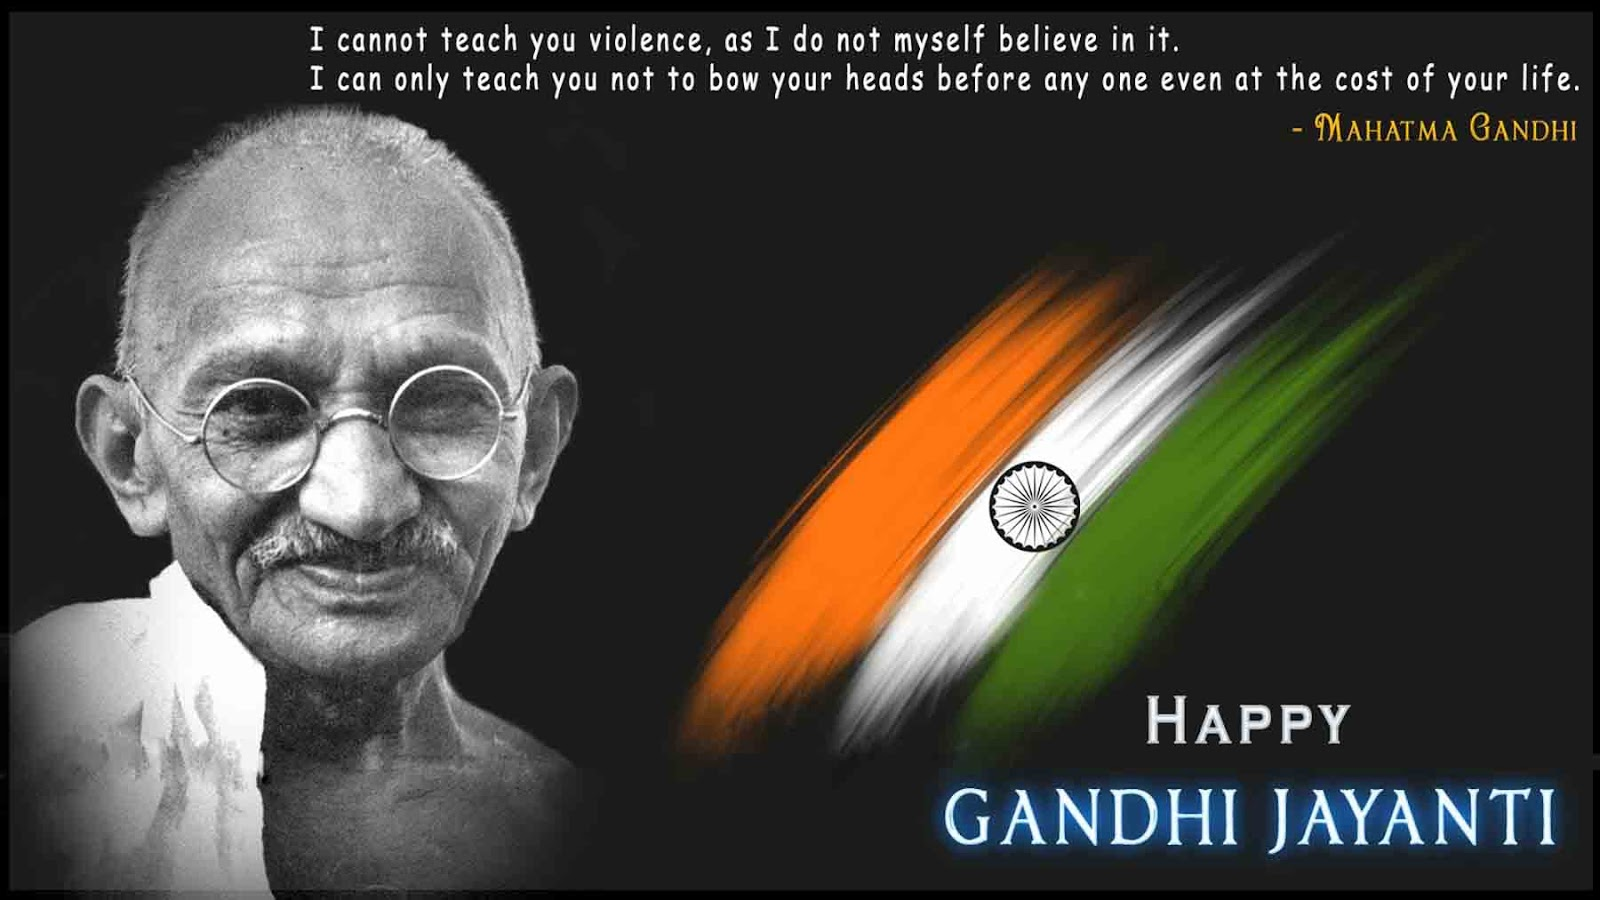 essay sms gandhi jayanti speech quotes images short essay whatsapp status sms kerala hse results